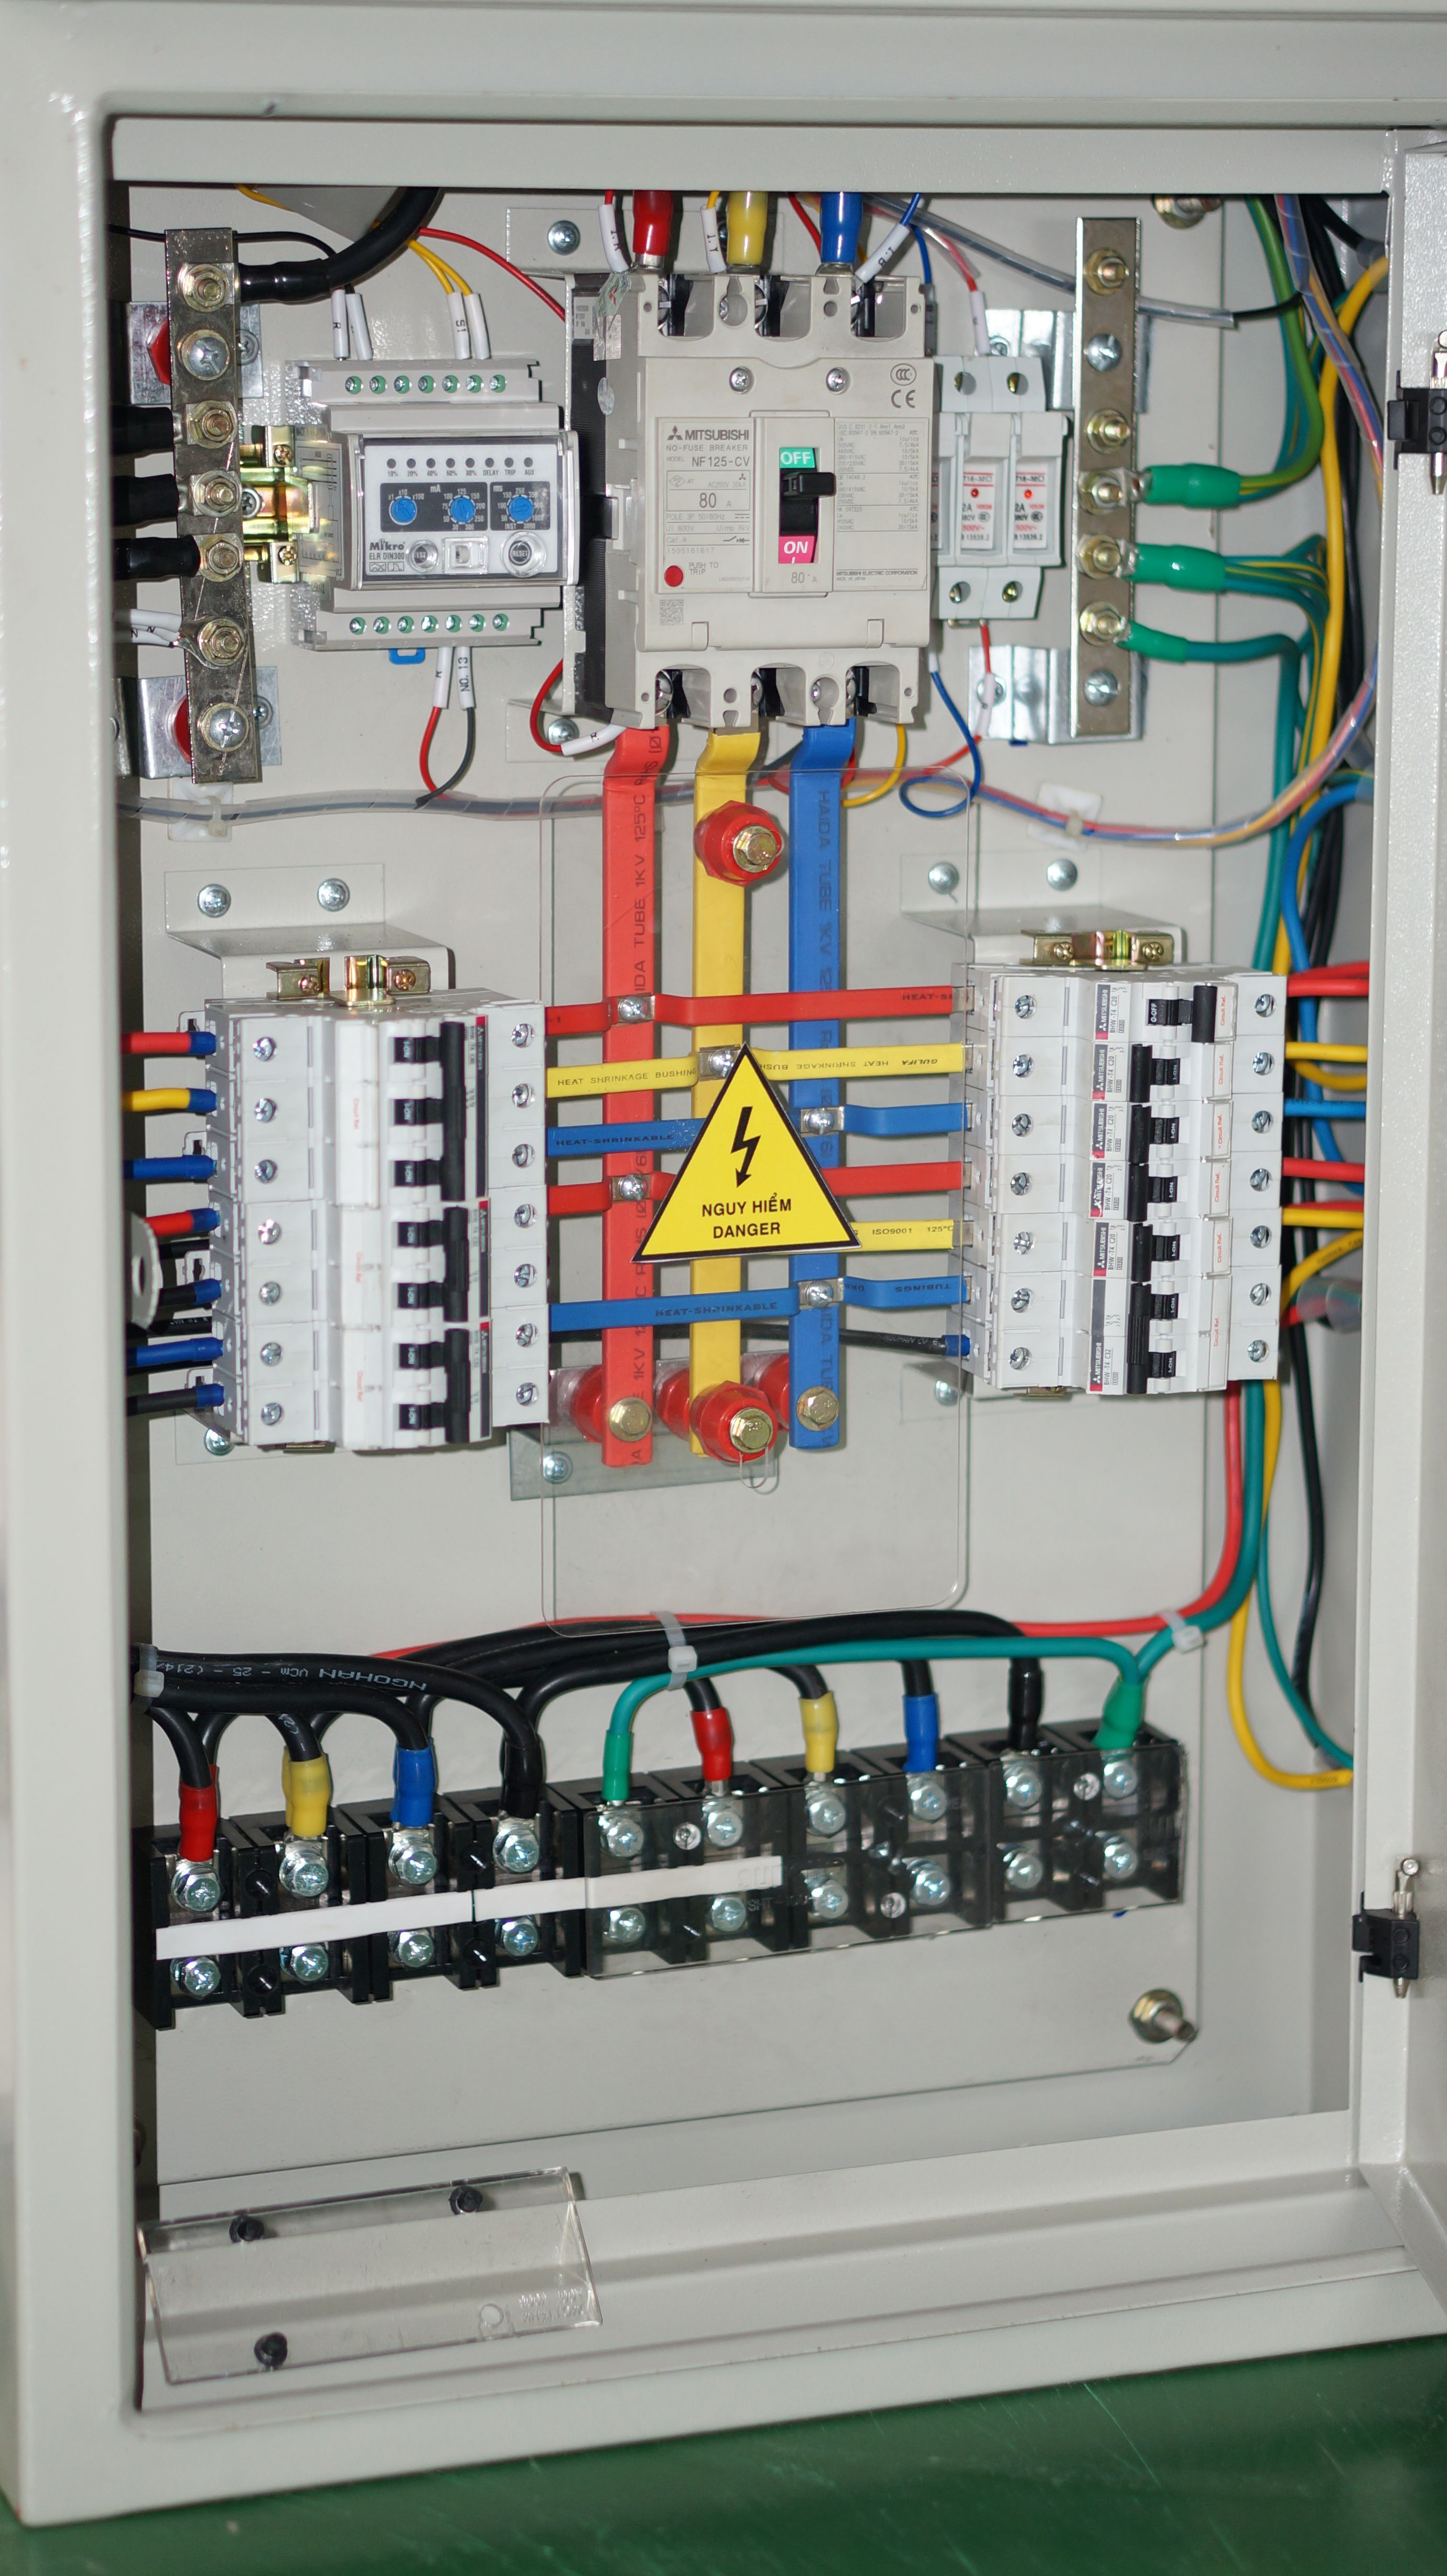 Pin By Tomas Aulino On Electrical Projects In 2020 Home Electrical Wiring Electrical Projects Electrical Installation